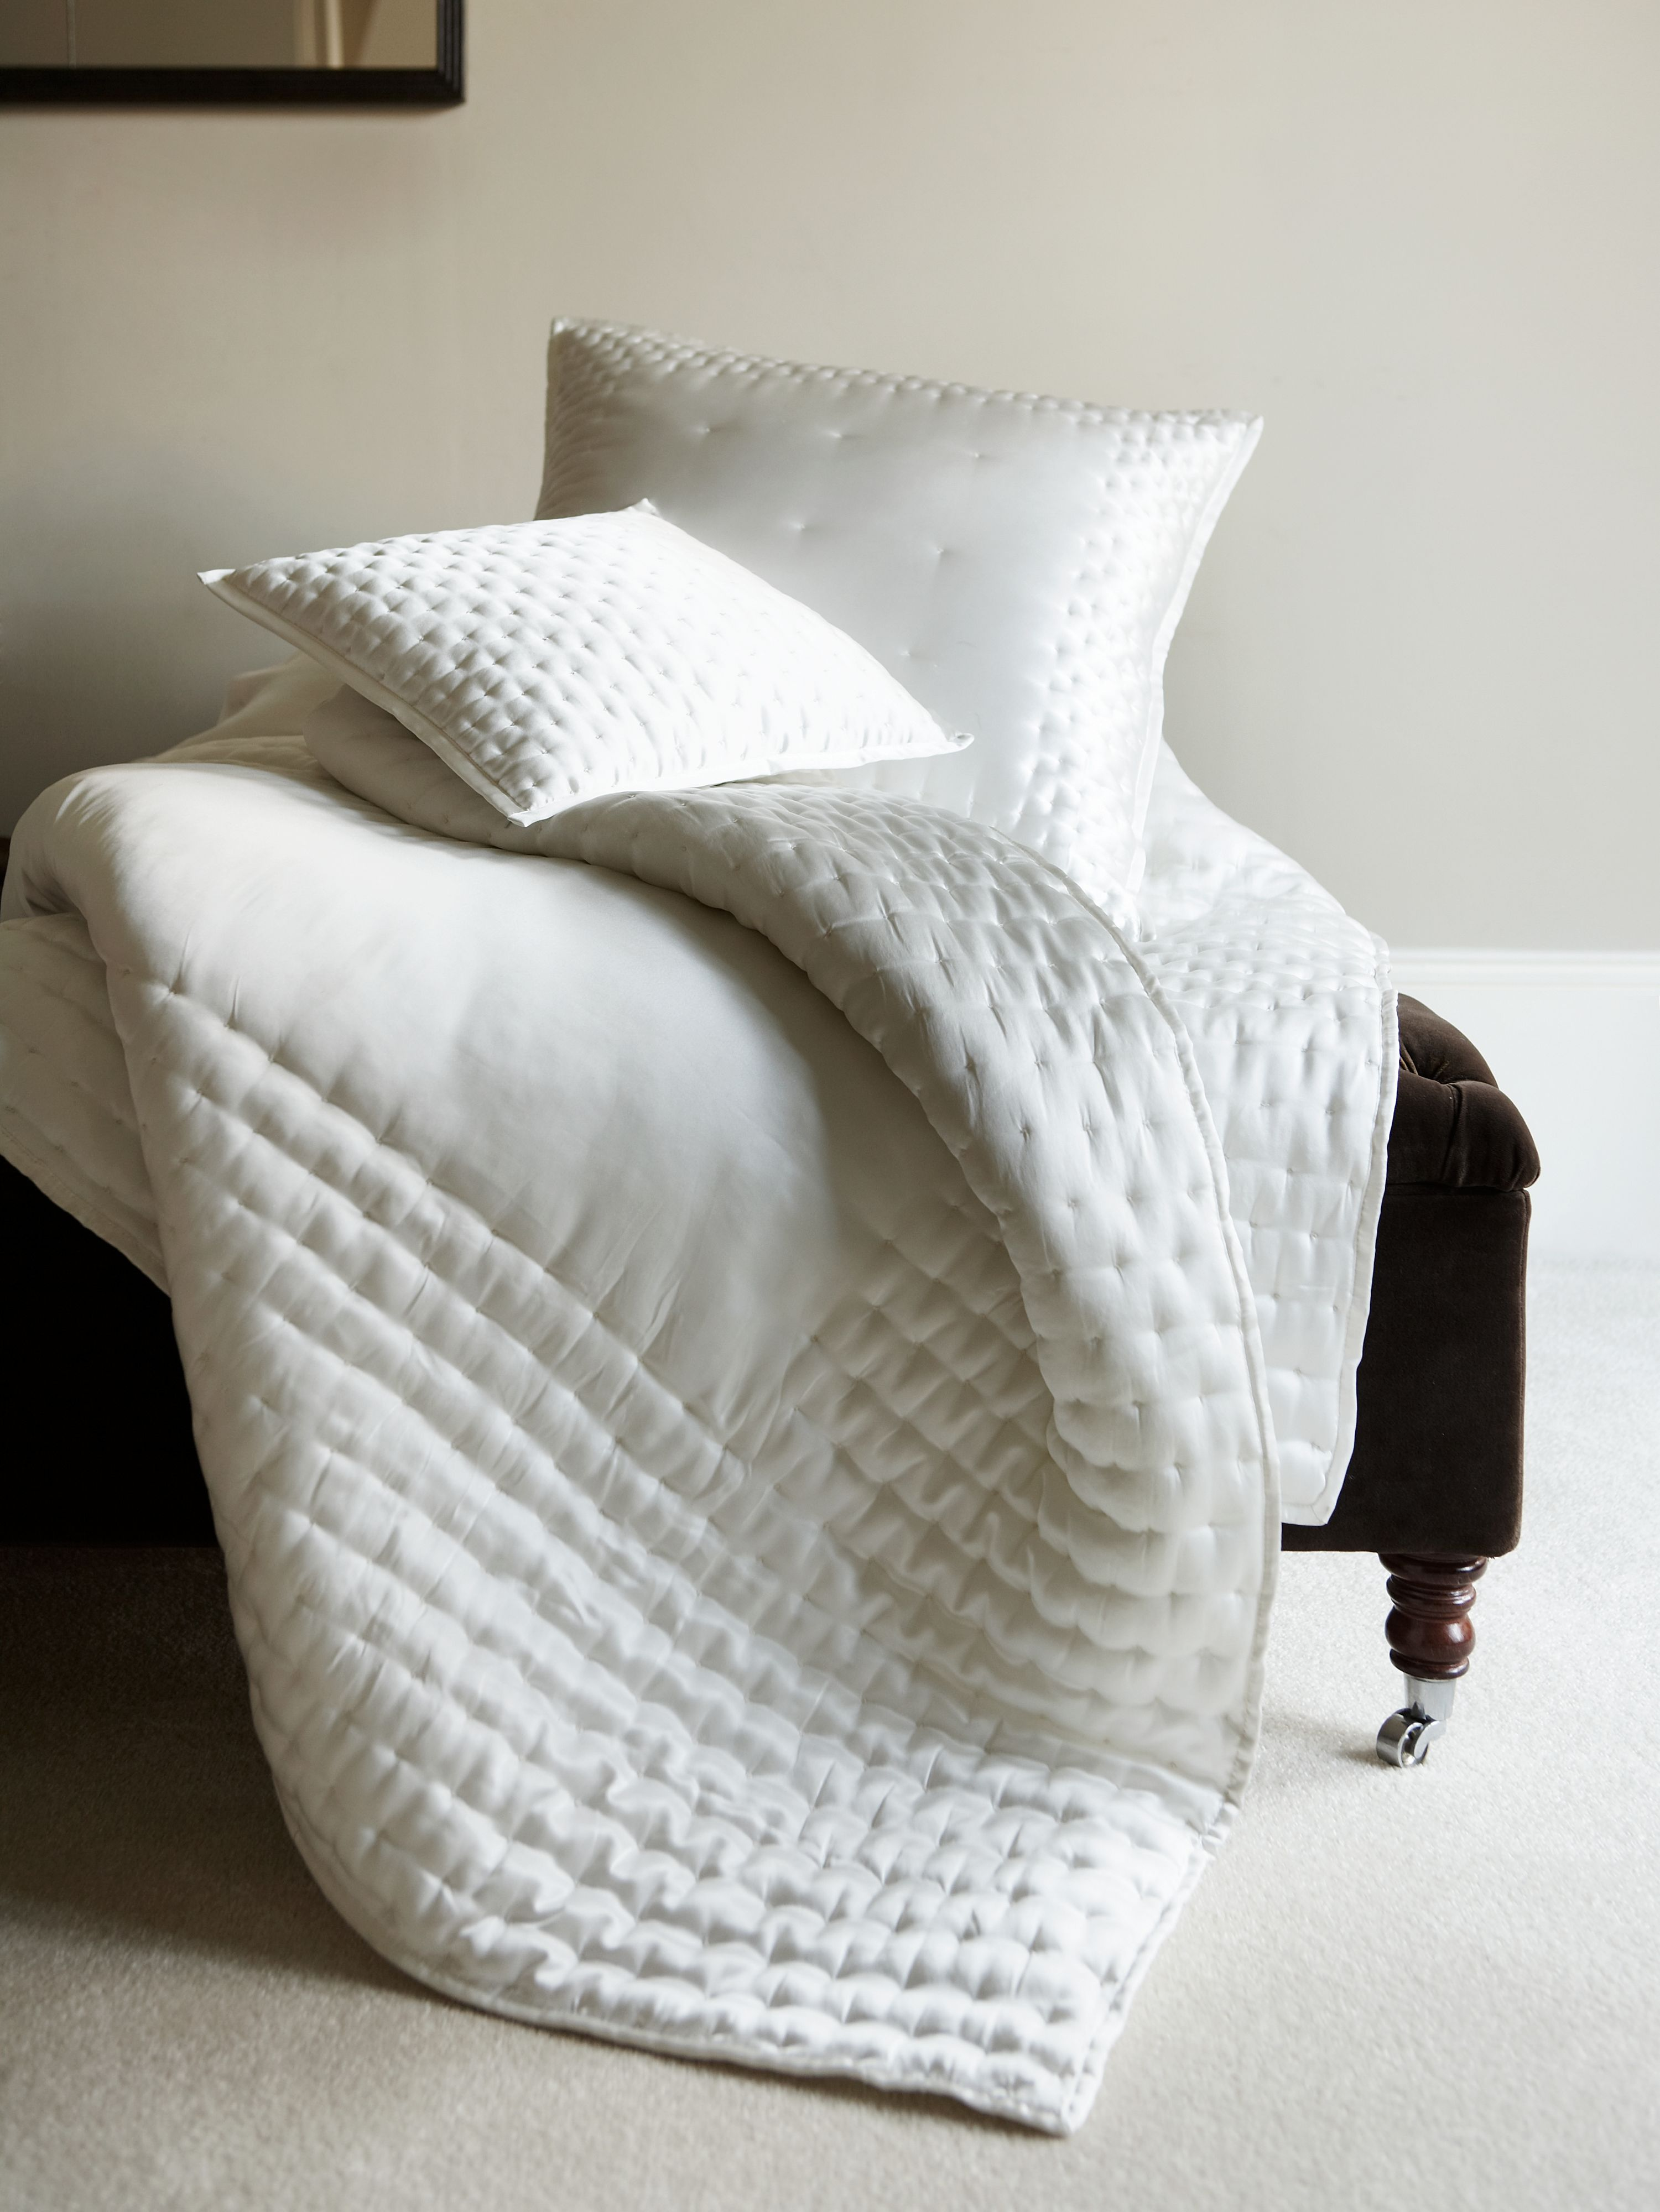 Dimple bedspreads and cushions in ivory